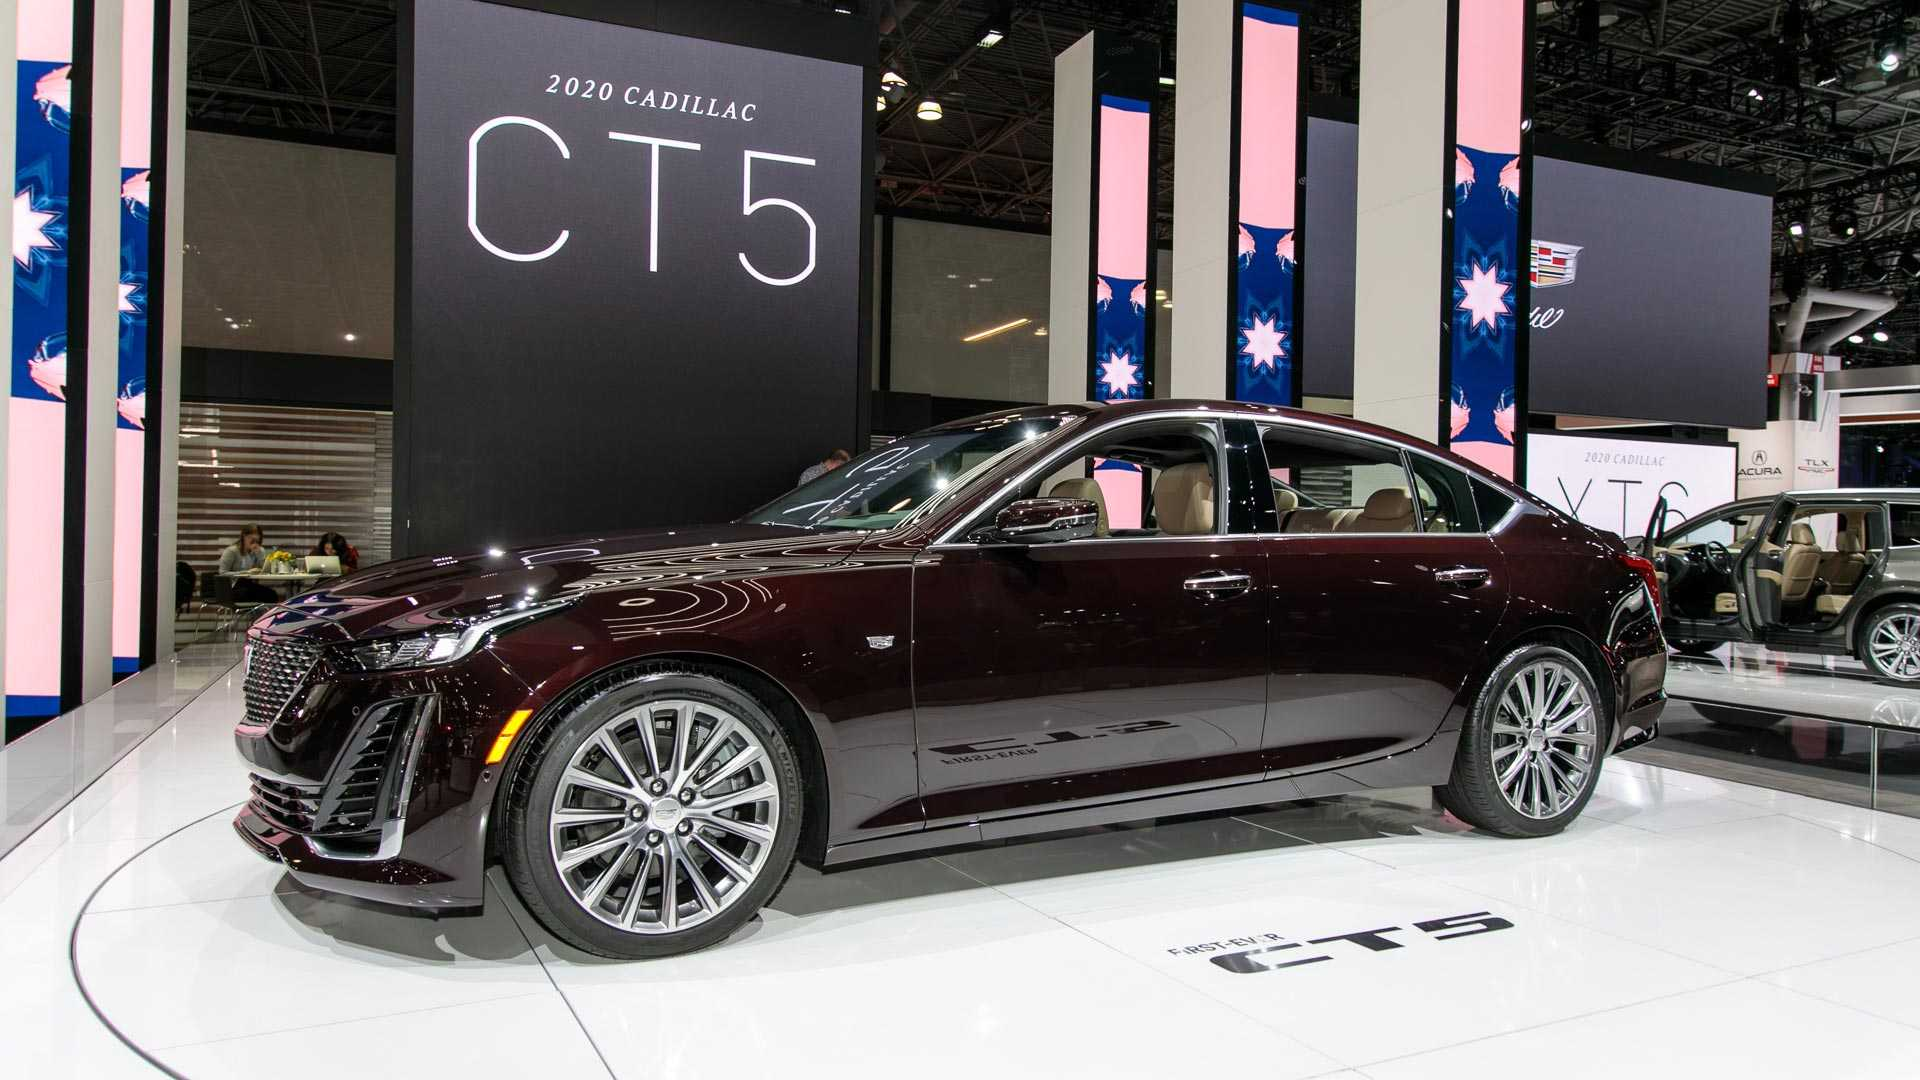 77 Great Cadillac For 2020 New Concept with Cadillac For 2020